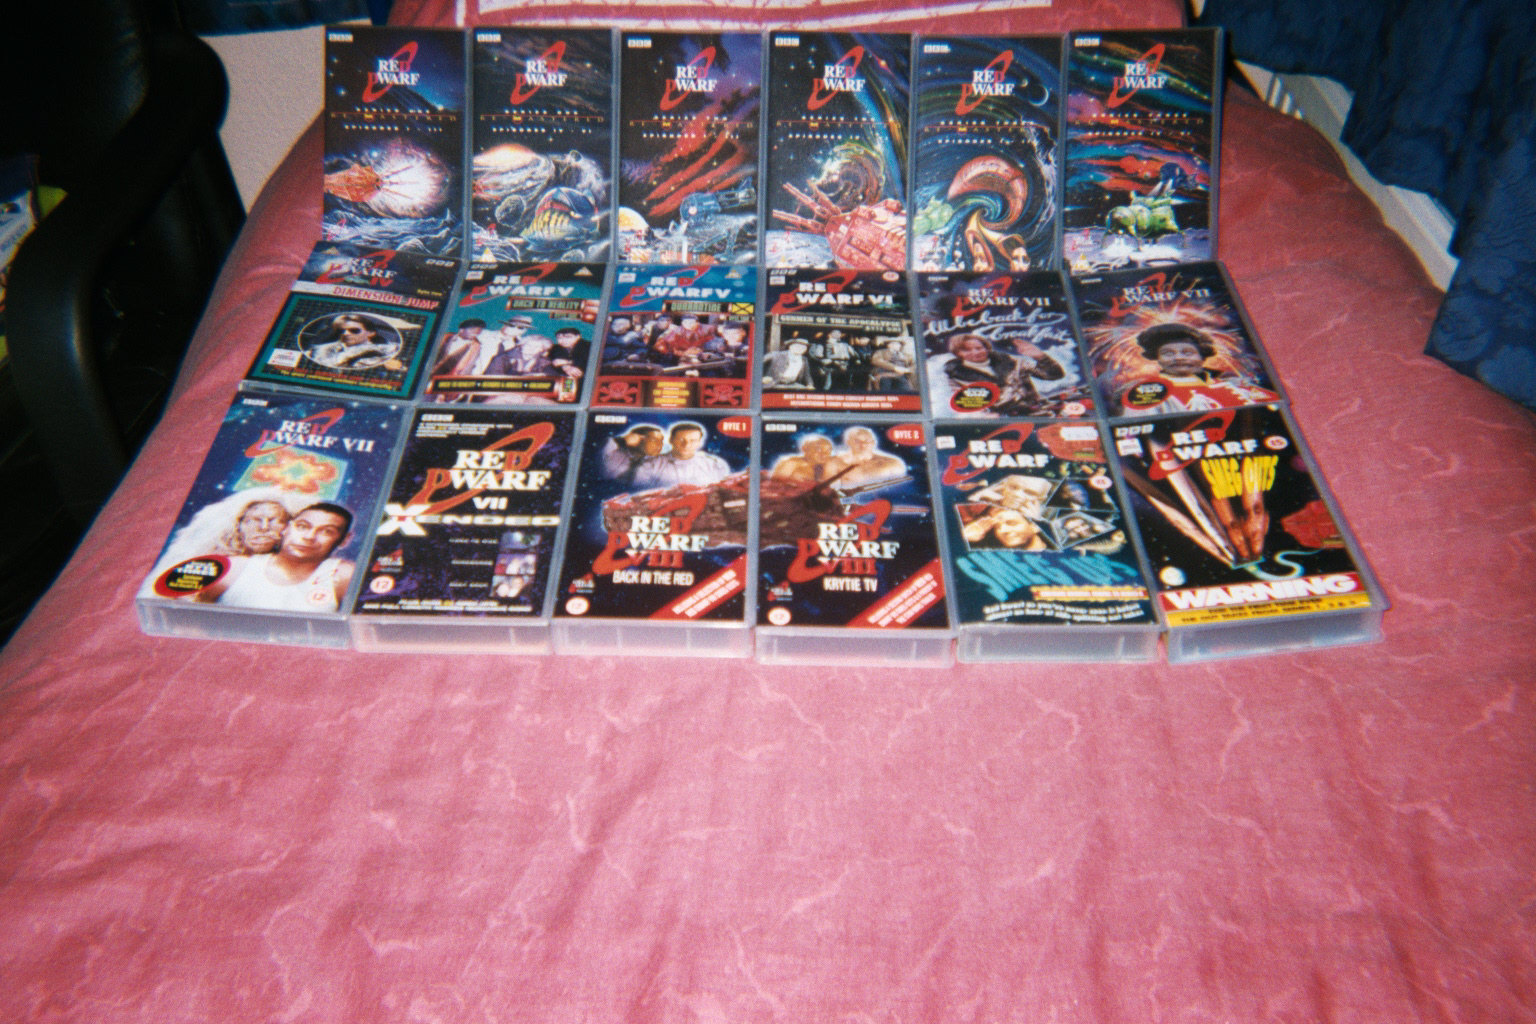 My Red Dwarf VHS collection